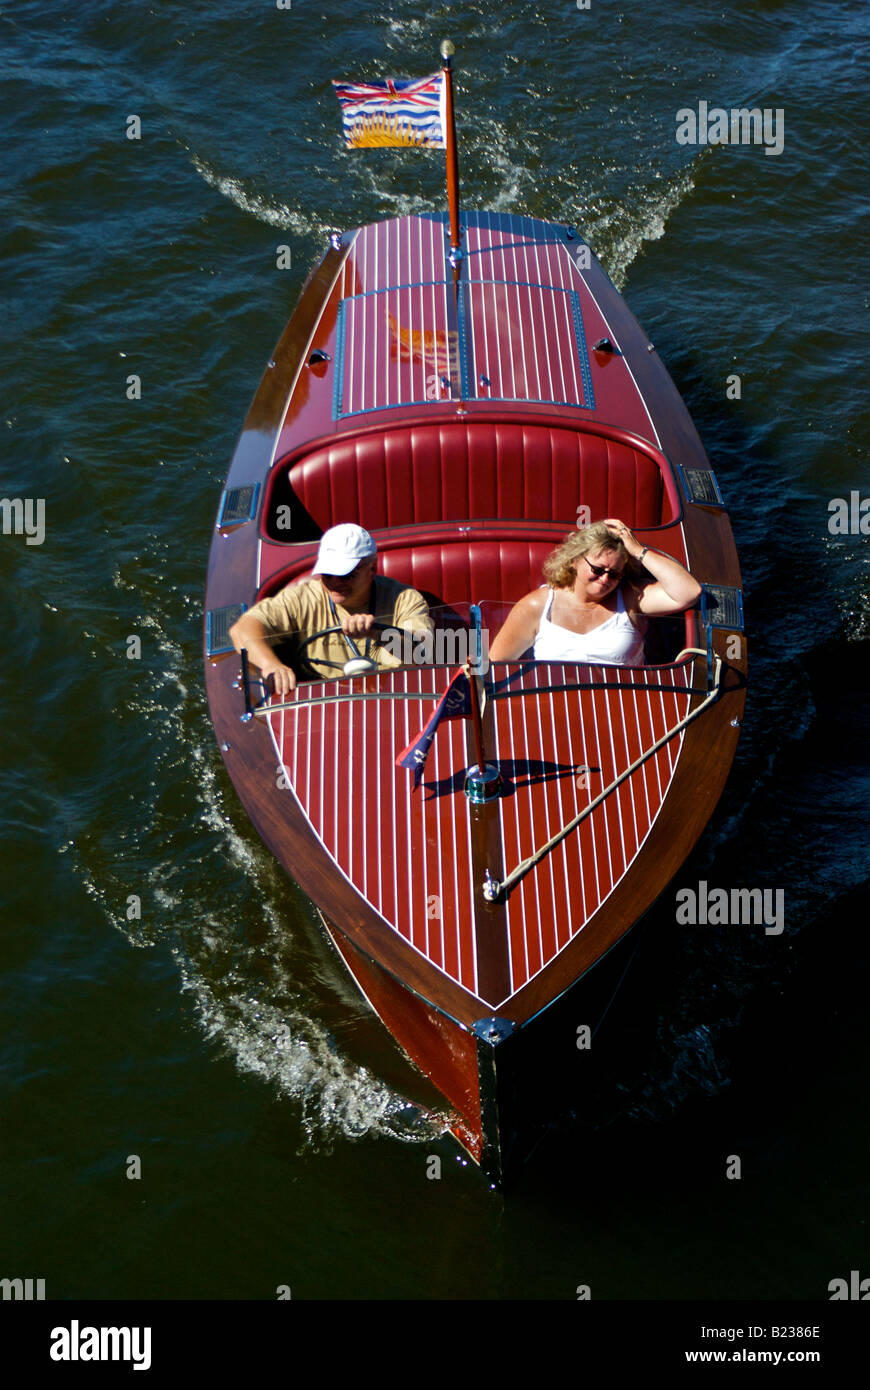 Classic Antique Wooden Power Speed Boat Stock Photo 18511990 Alamy